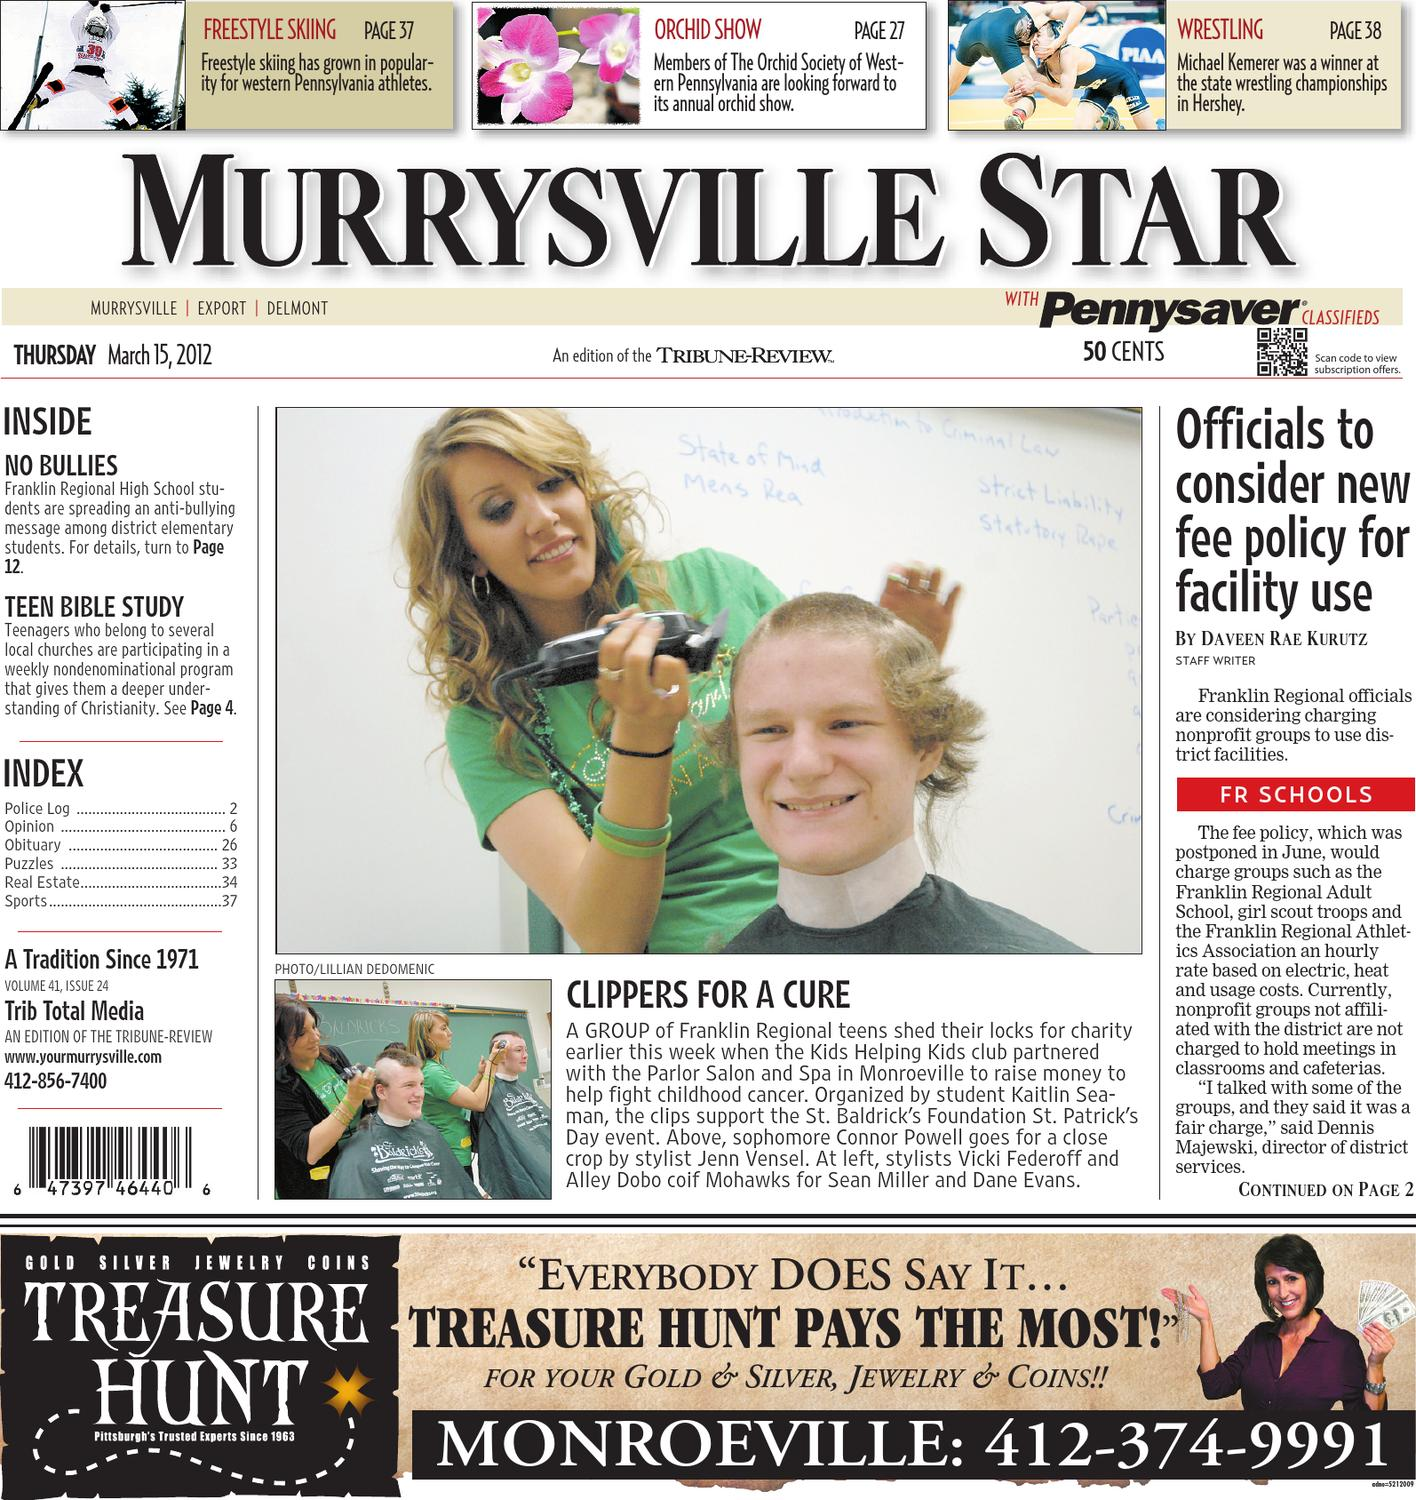 Murrysville Star March 15, 2012 by Daveen Kurutz - issuu